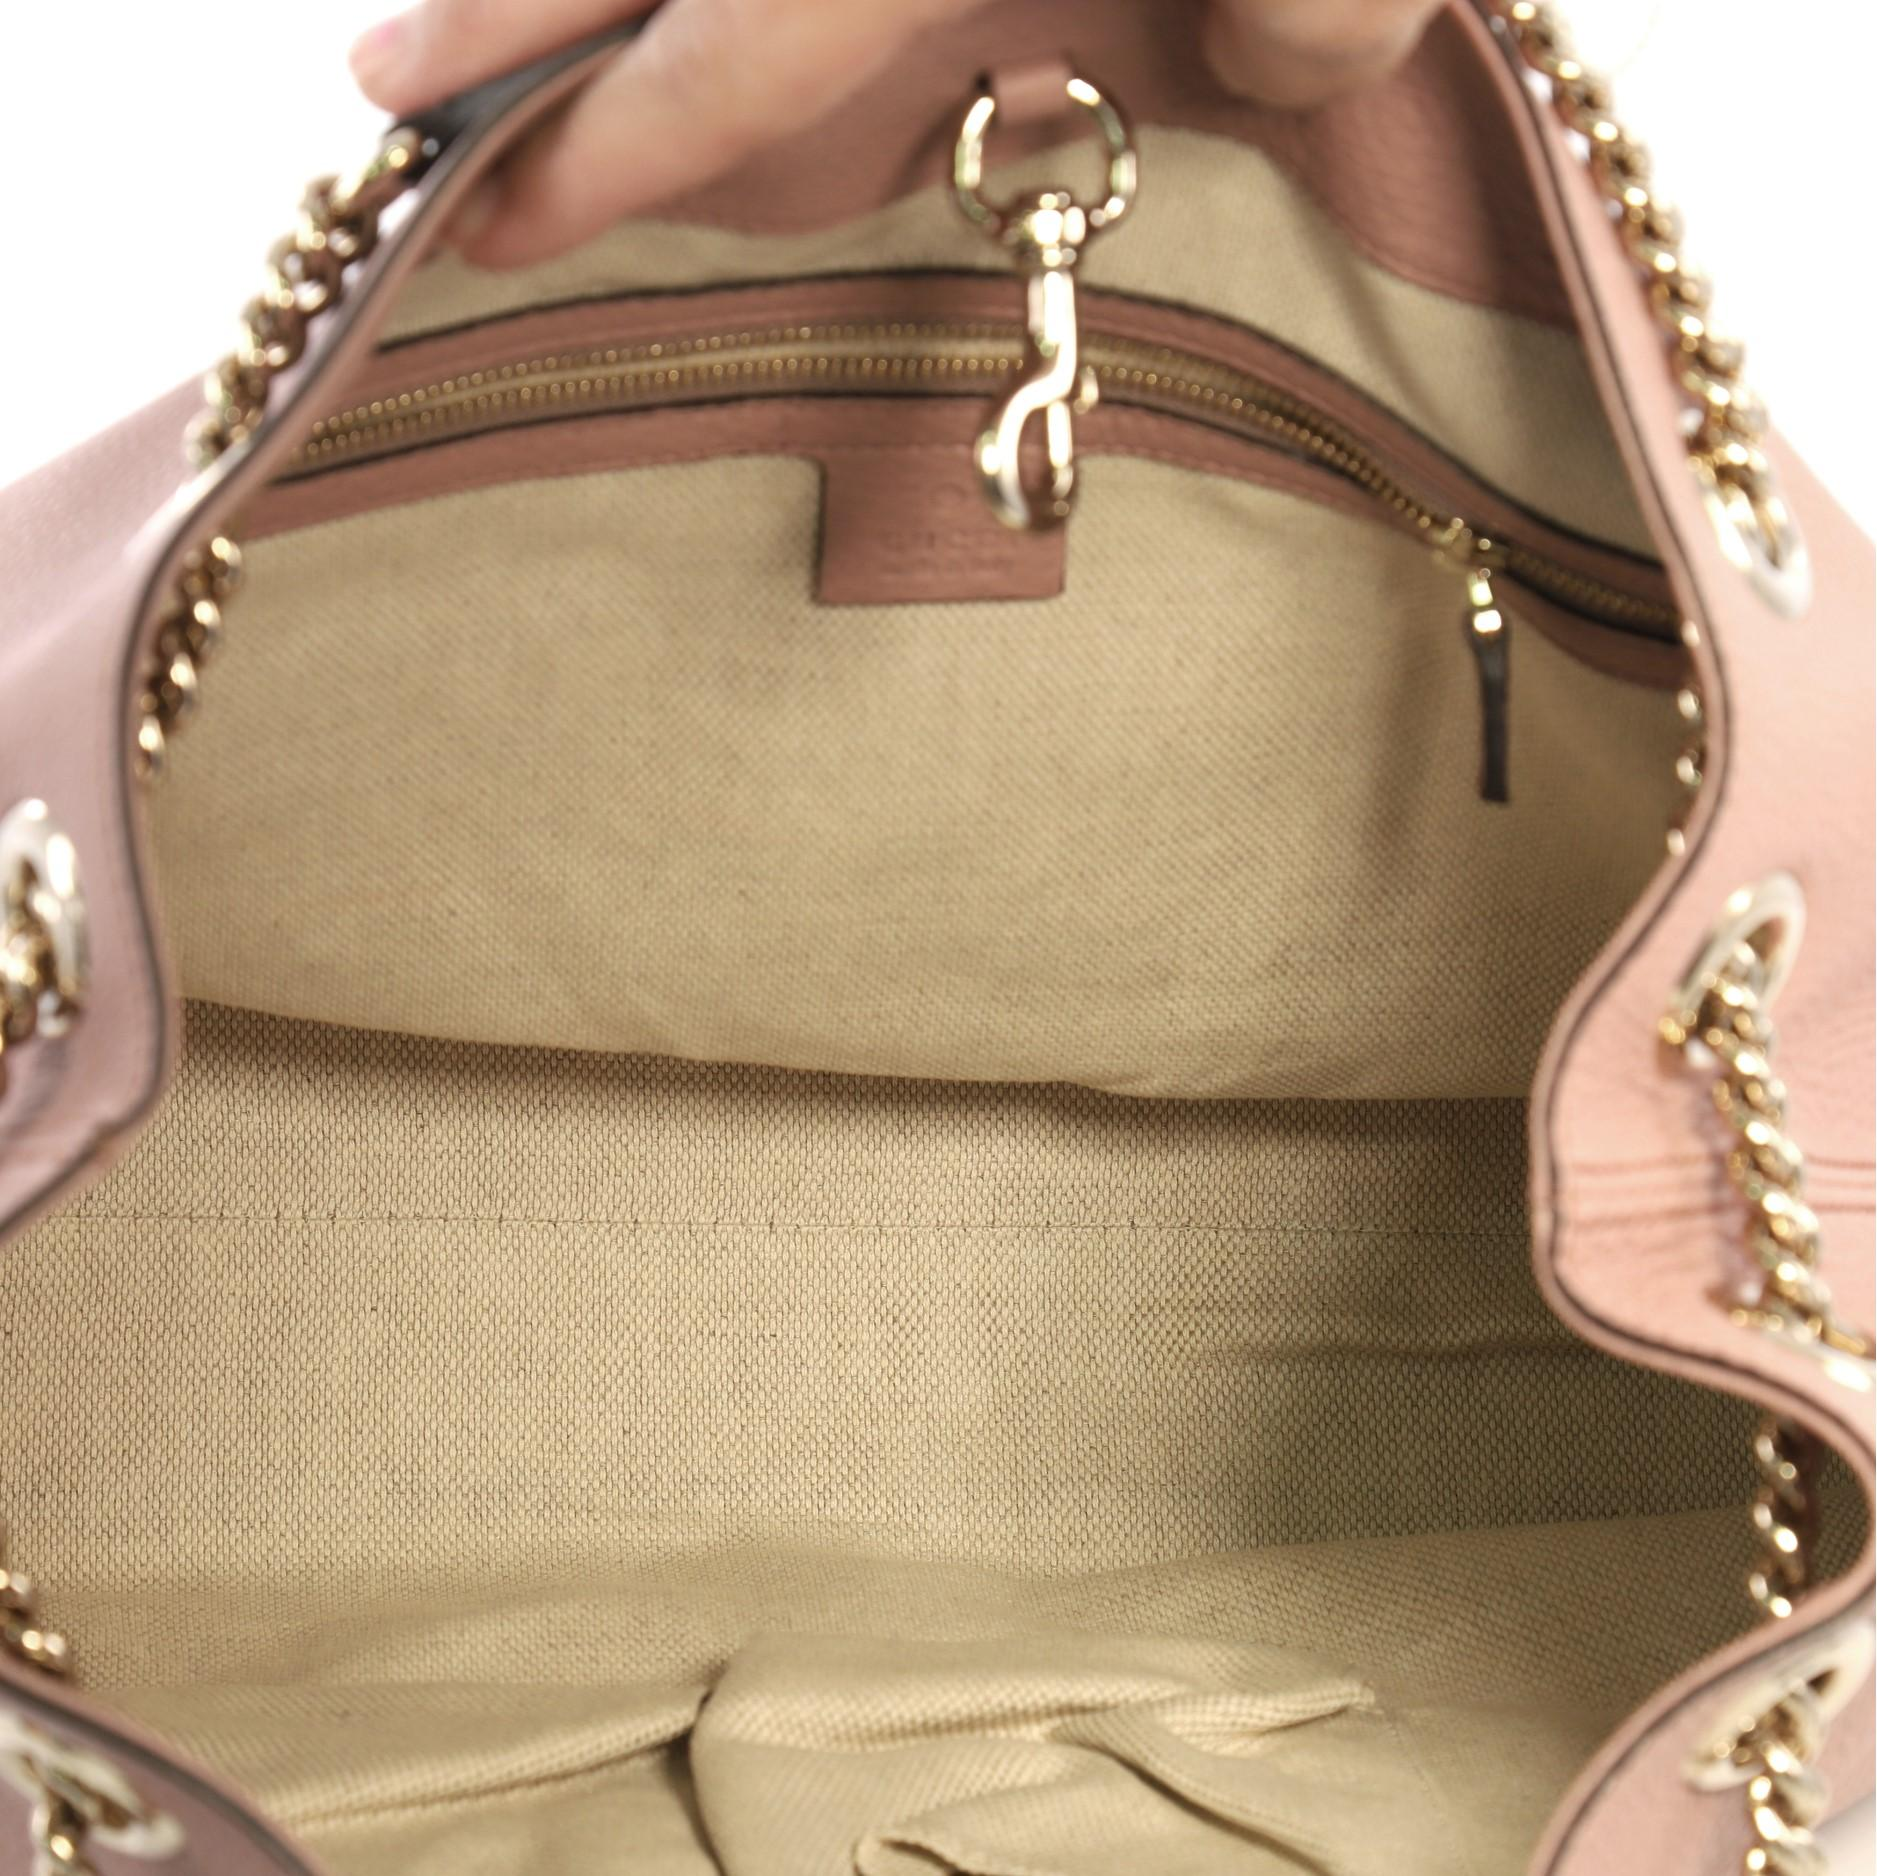 9867db395e5 Gucci Soho Chain Strap Shoulder Bag Leather Medium For Sale at 1stdibs